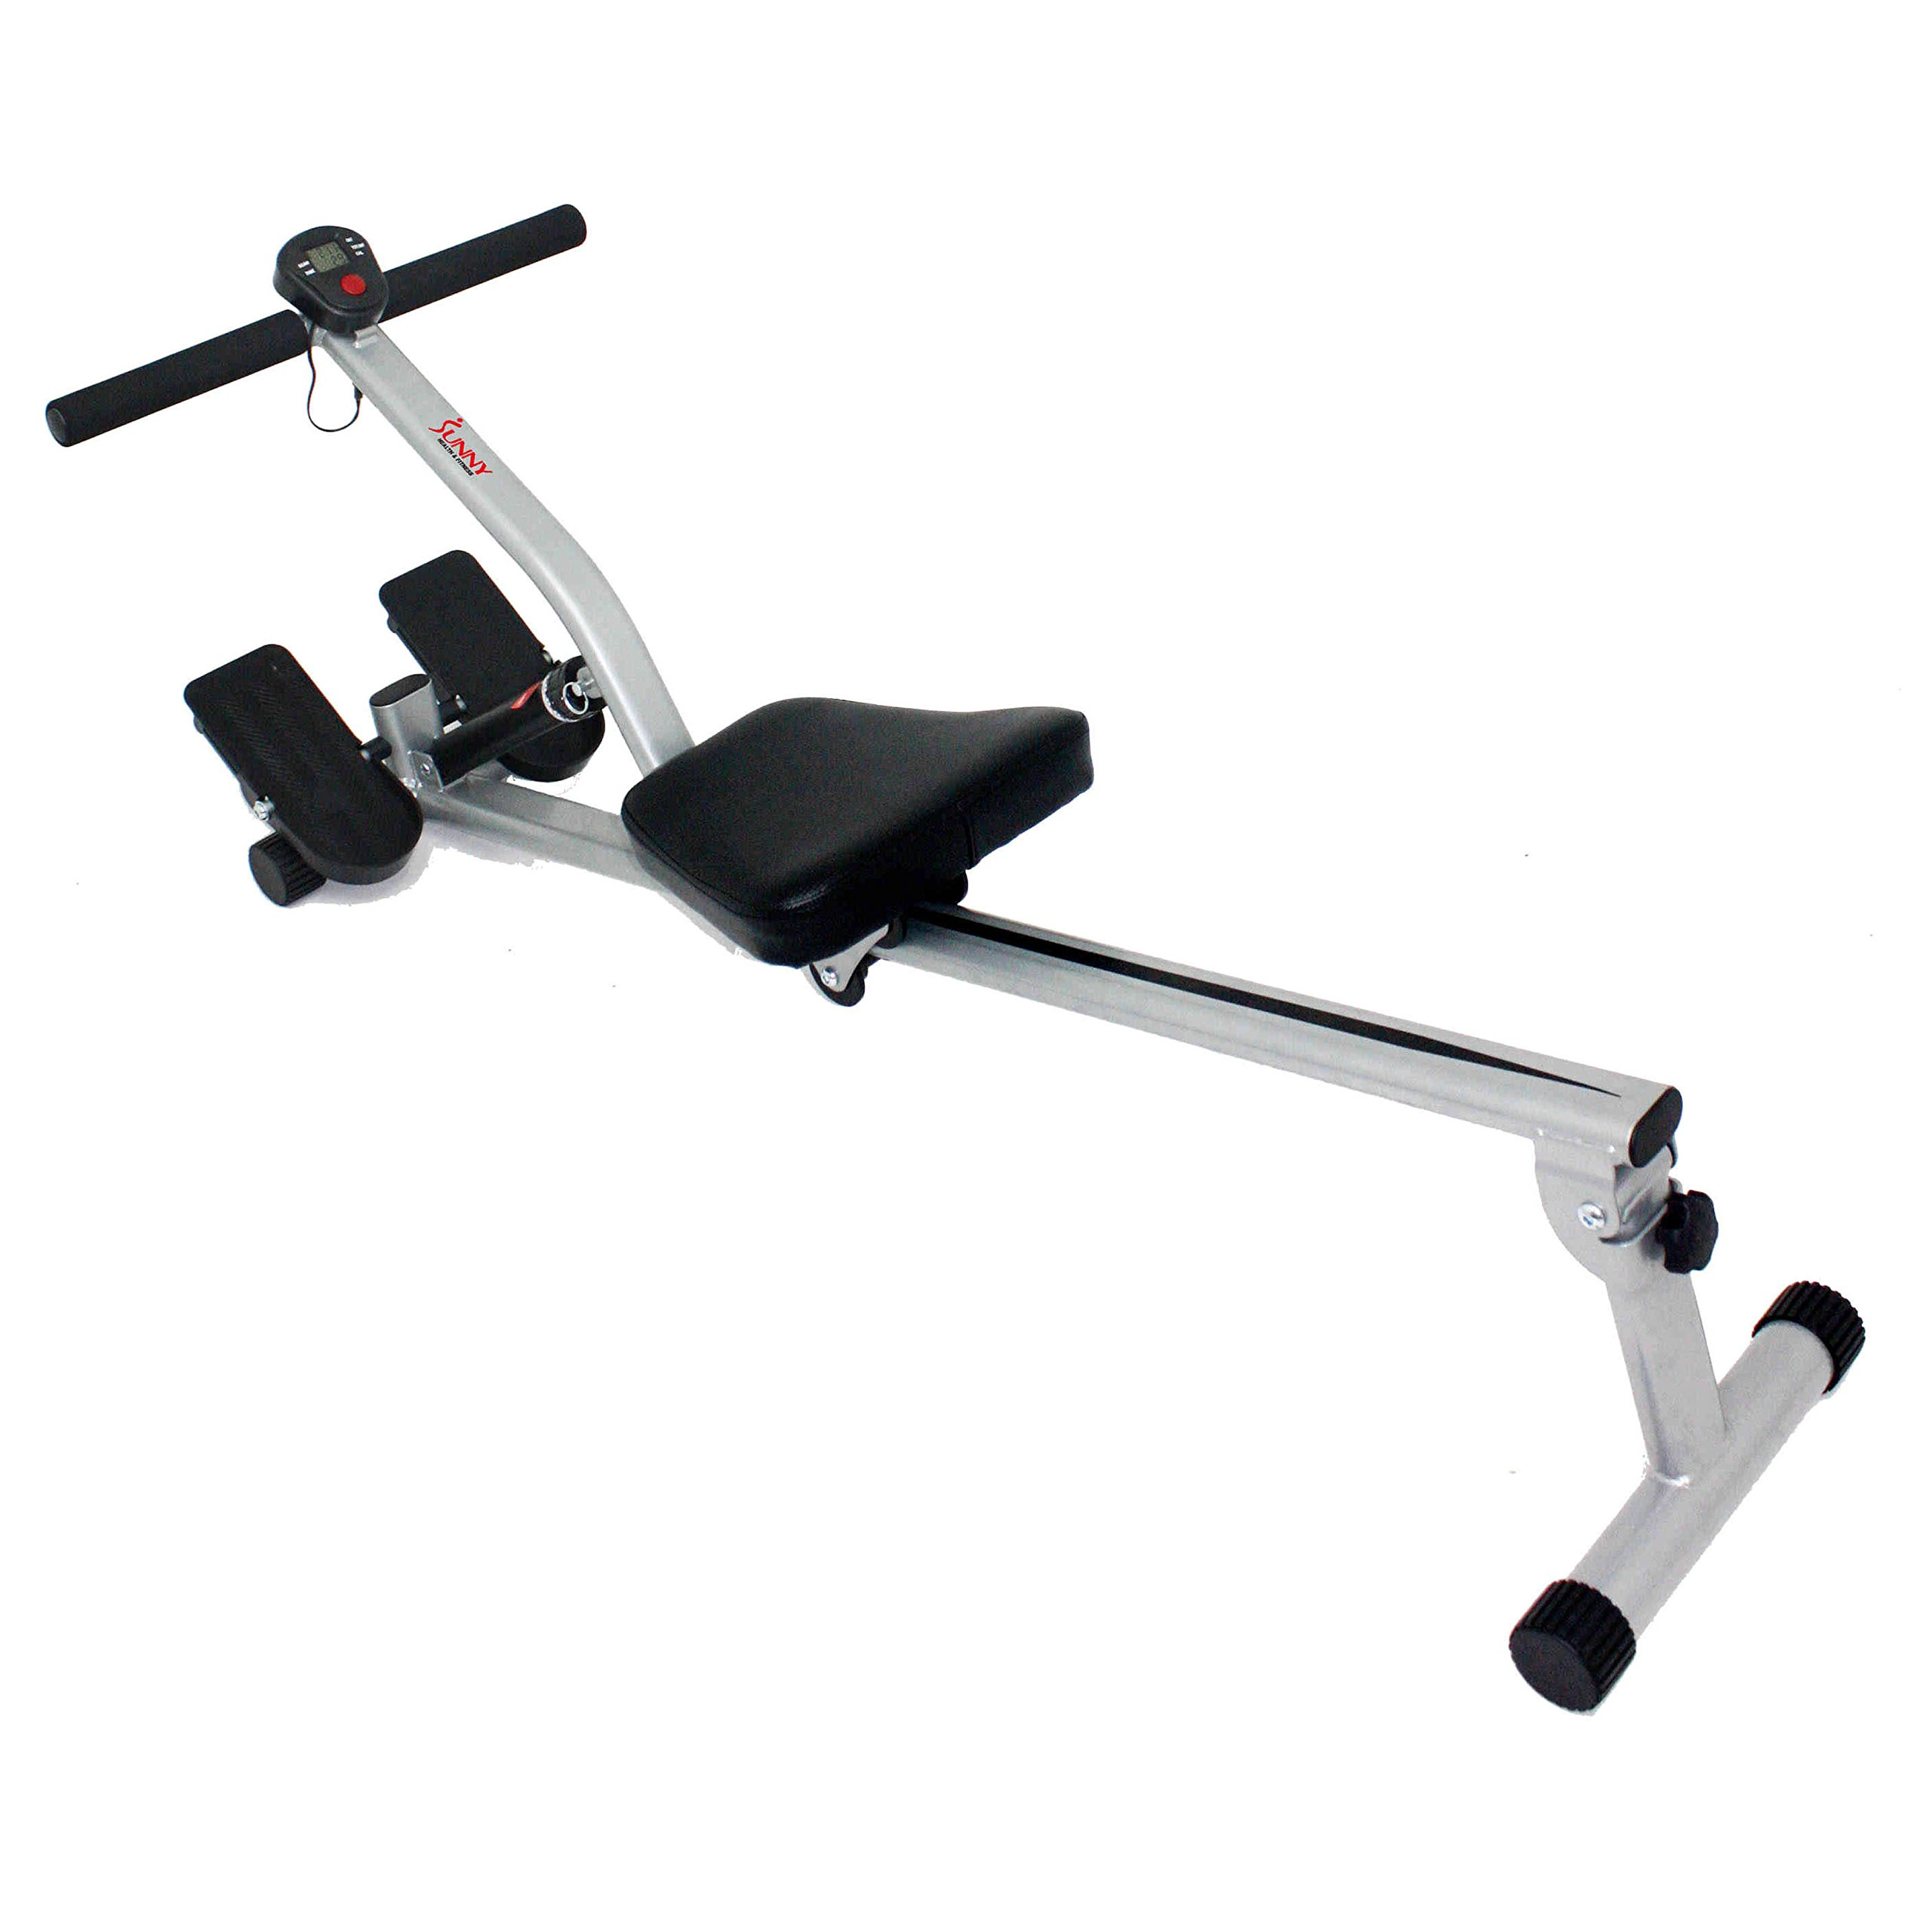 Sunny Health & Fitness SF-RW1205 12 Adjustable Resistance Rowing Machine Rower w/Digital Monitor